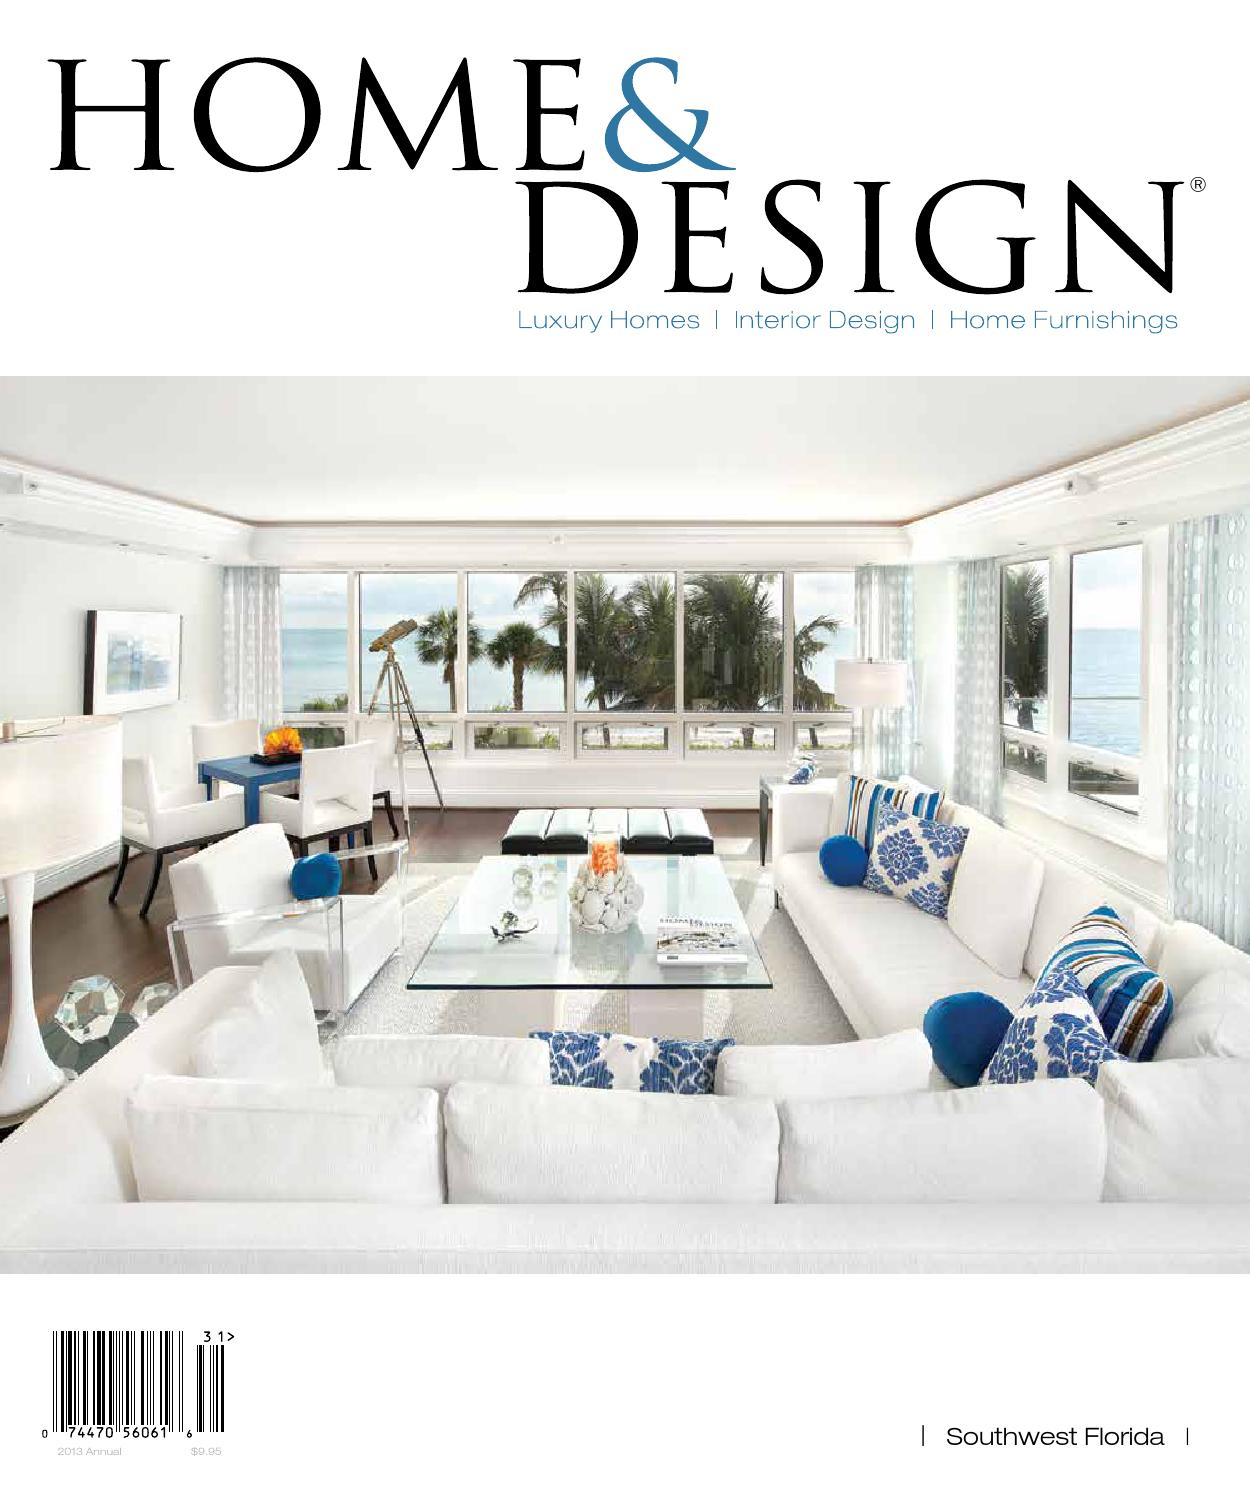 Home & Design Magazine Annual Resource Guide 2013 By Anthony